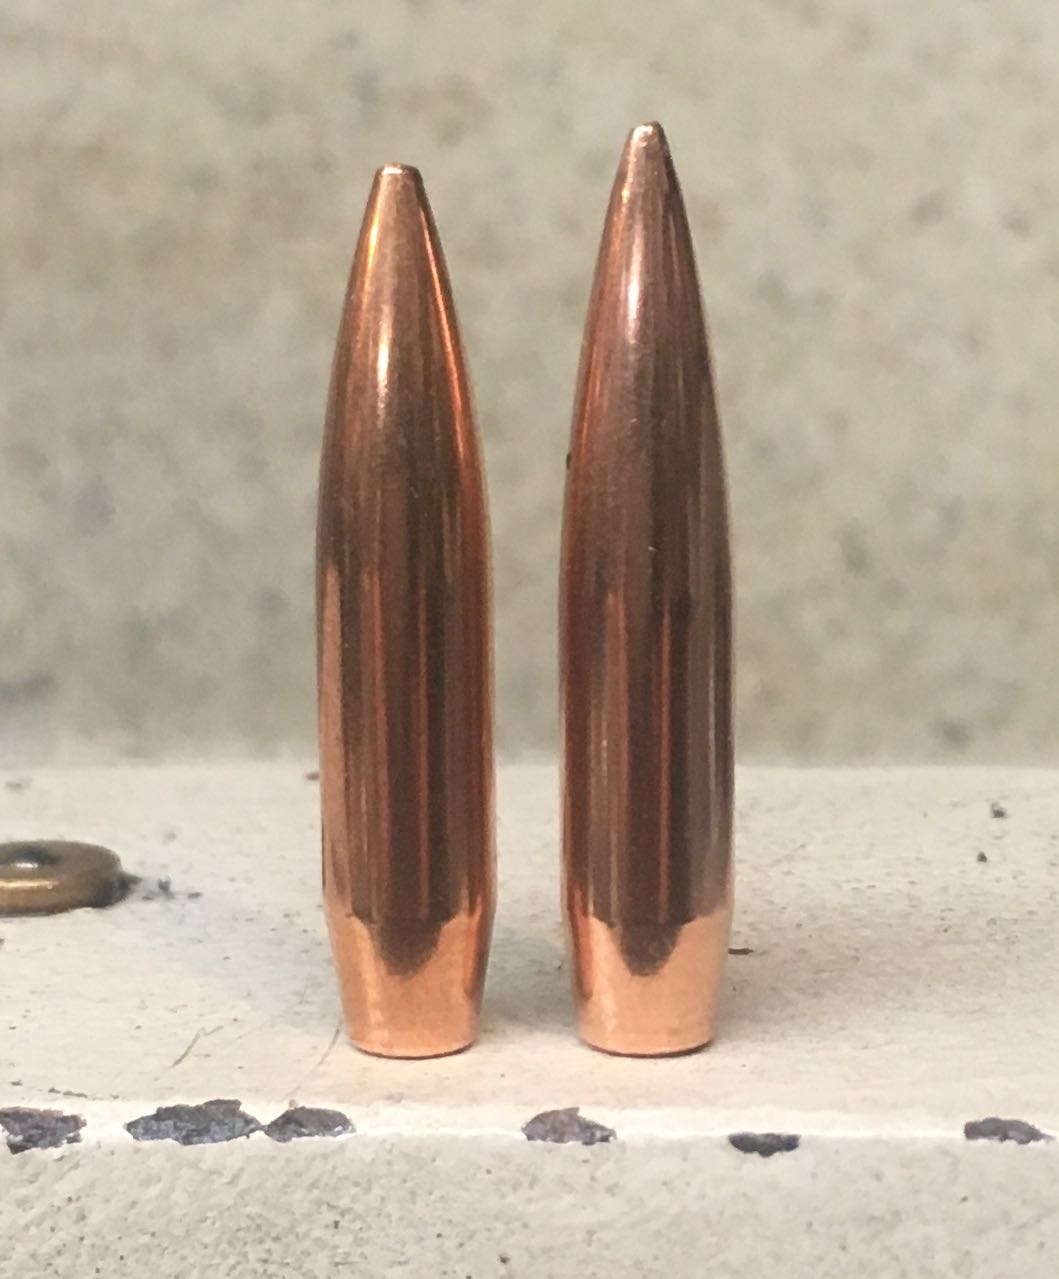 6 5 Creedmoor loads: 142 gr  and 140 gr  SMK with H4350